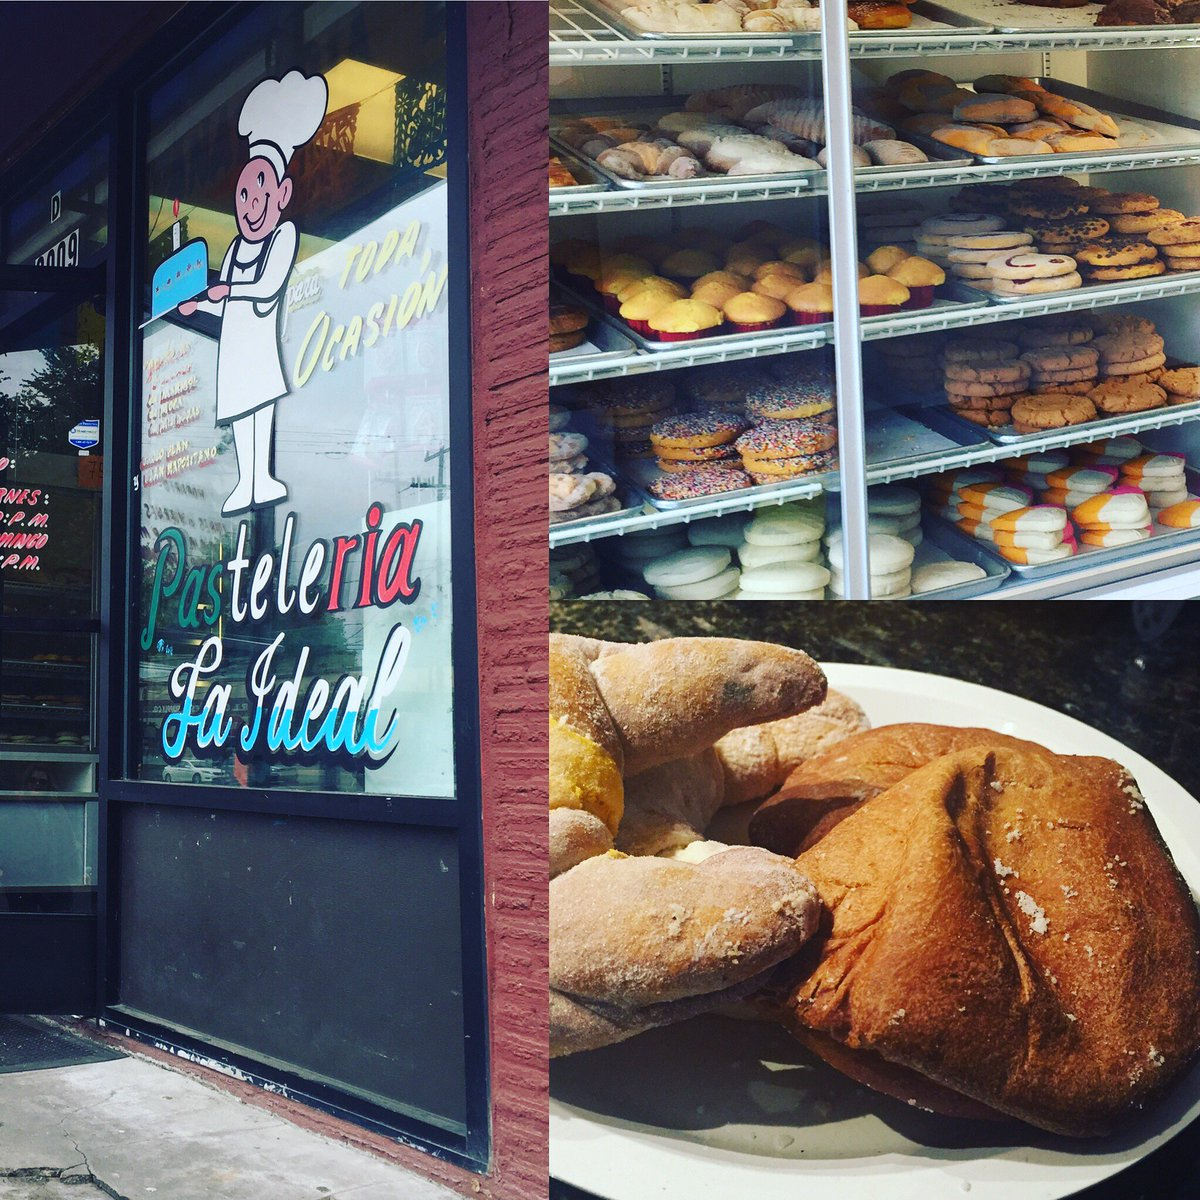 The one place for pan dulce in Seattle is just as good as any place in Houston. Who knew!?